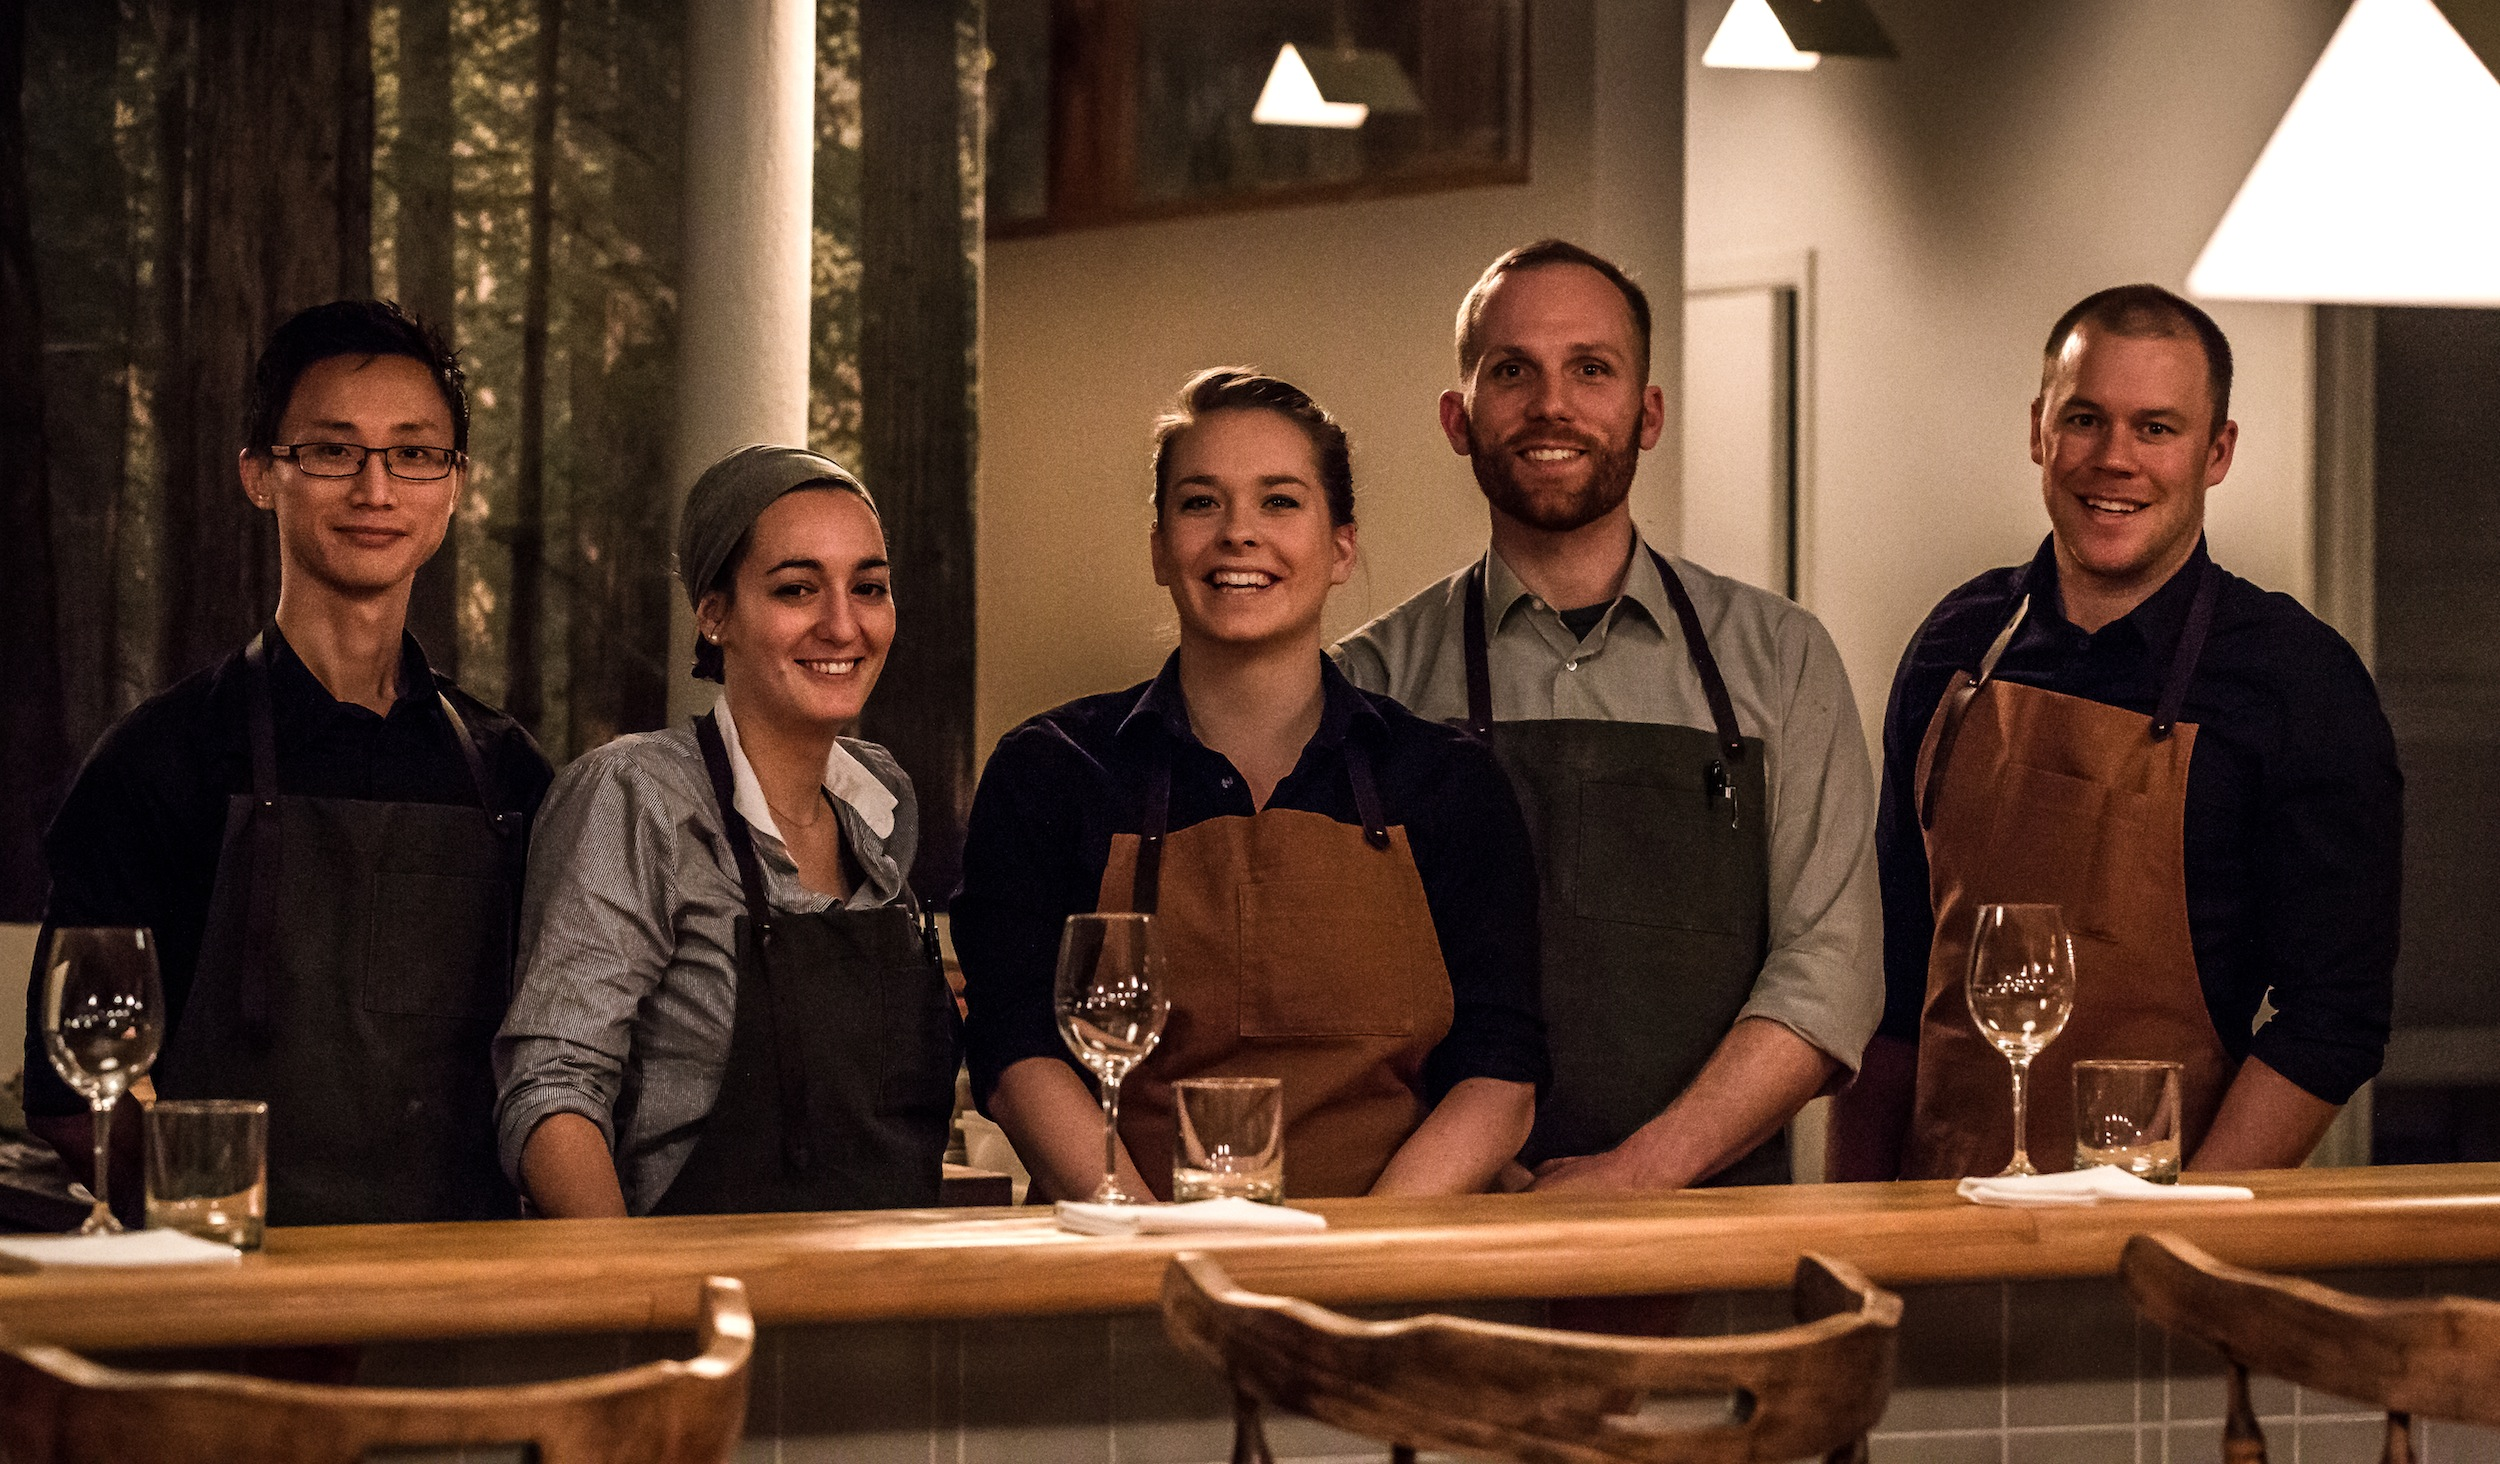 Chef John Winter Russell, with Valérie Bélisle to his right (not pictured, Emily Campeau)